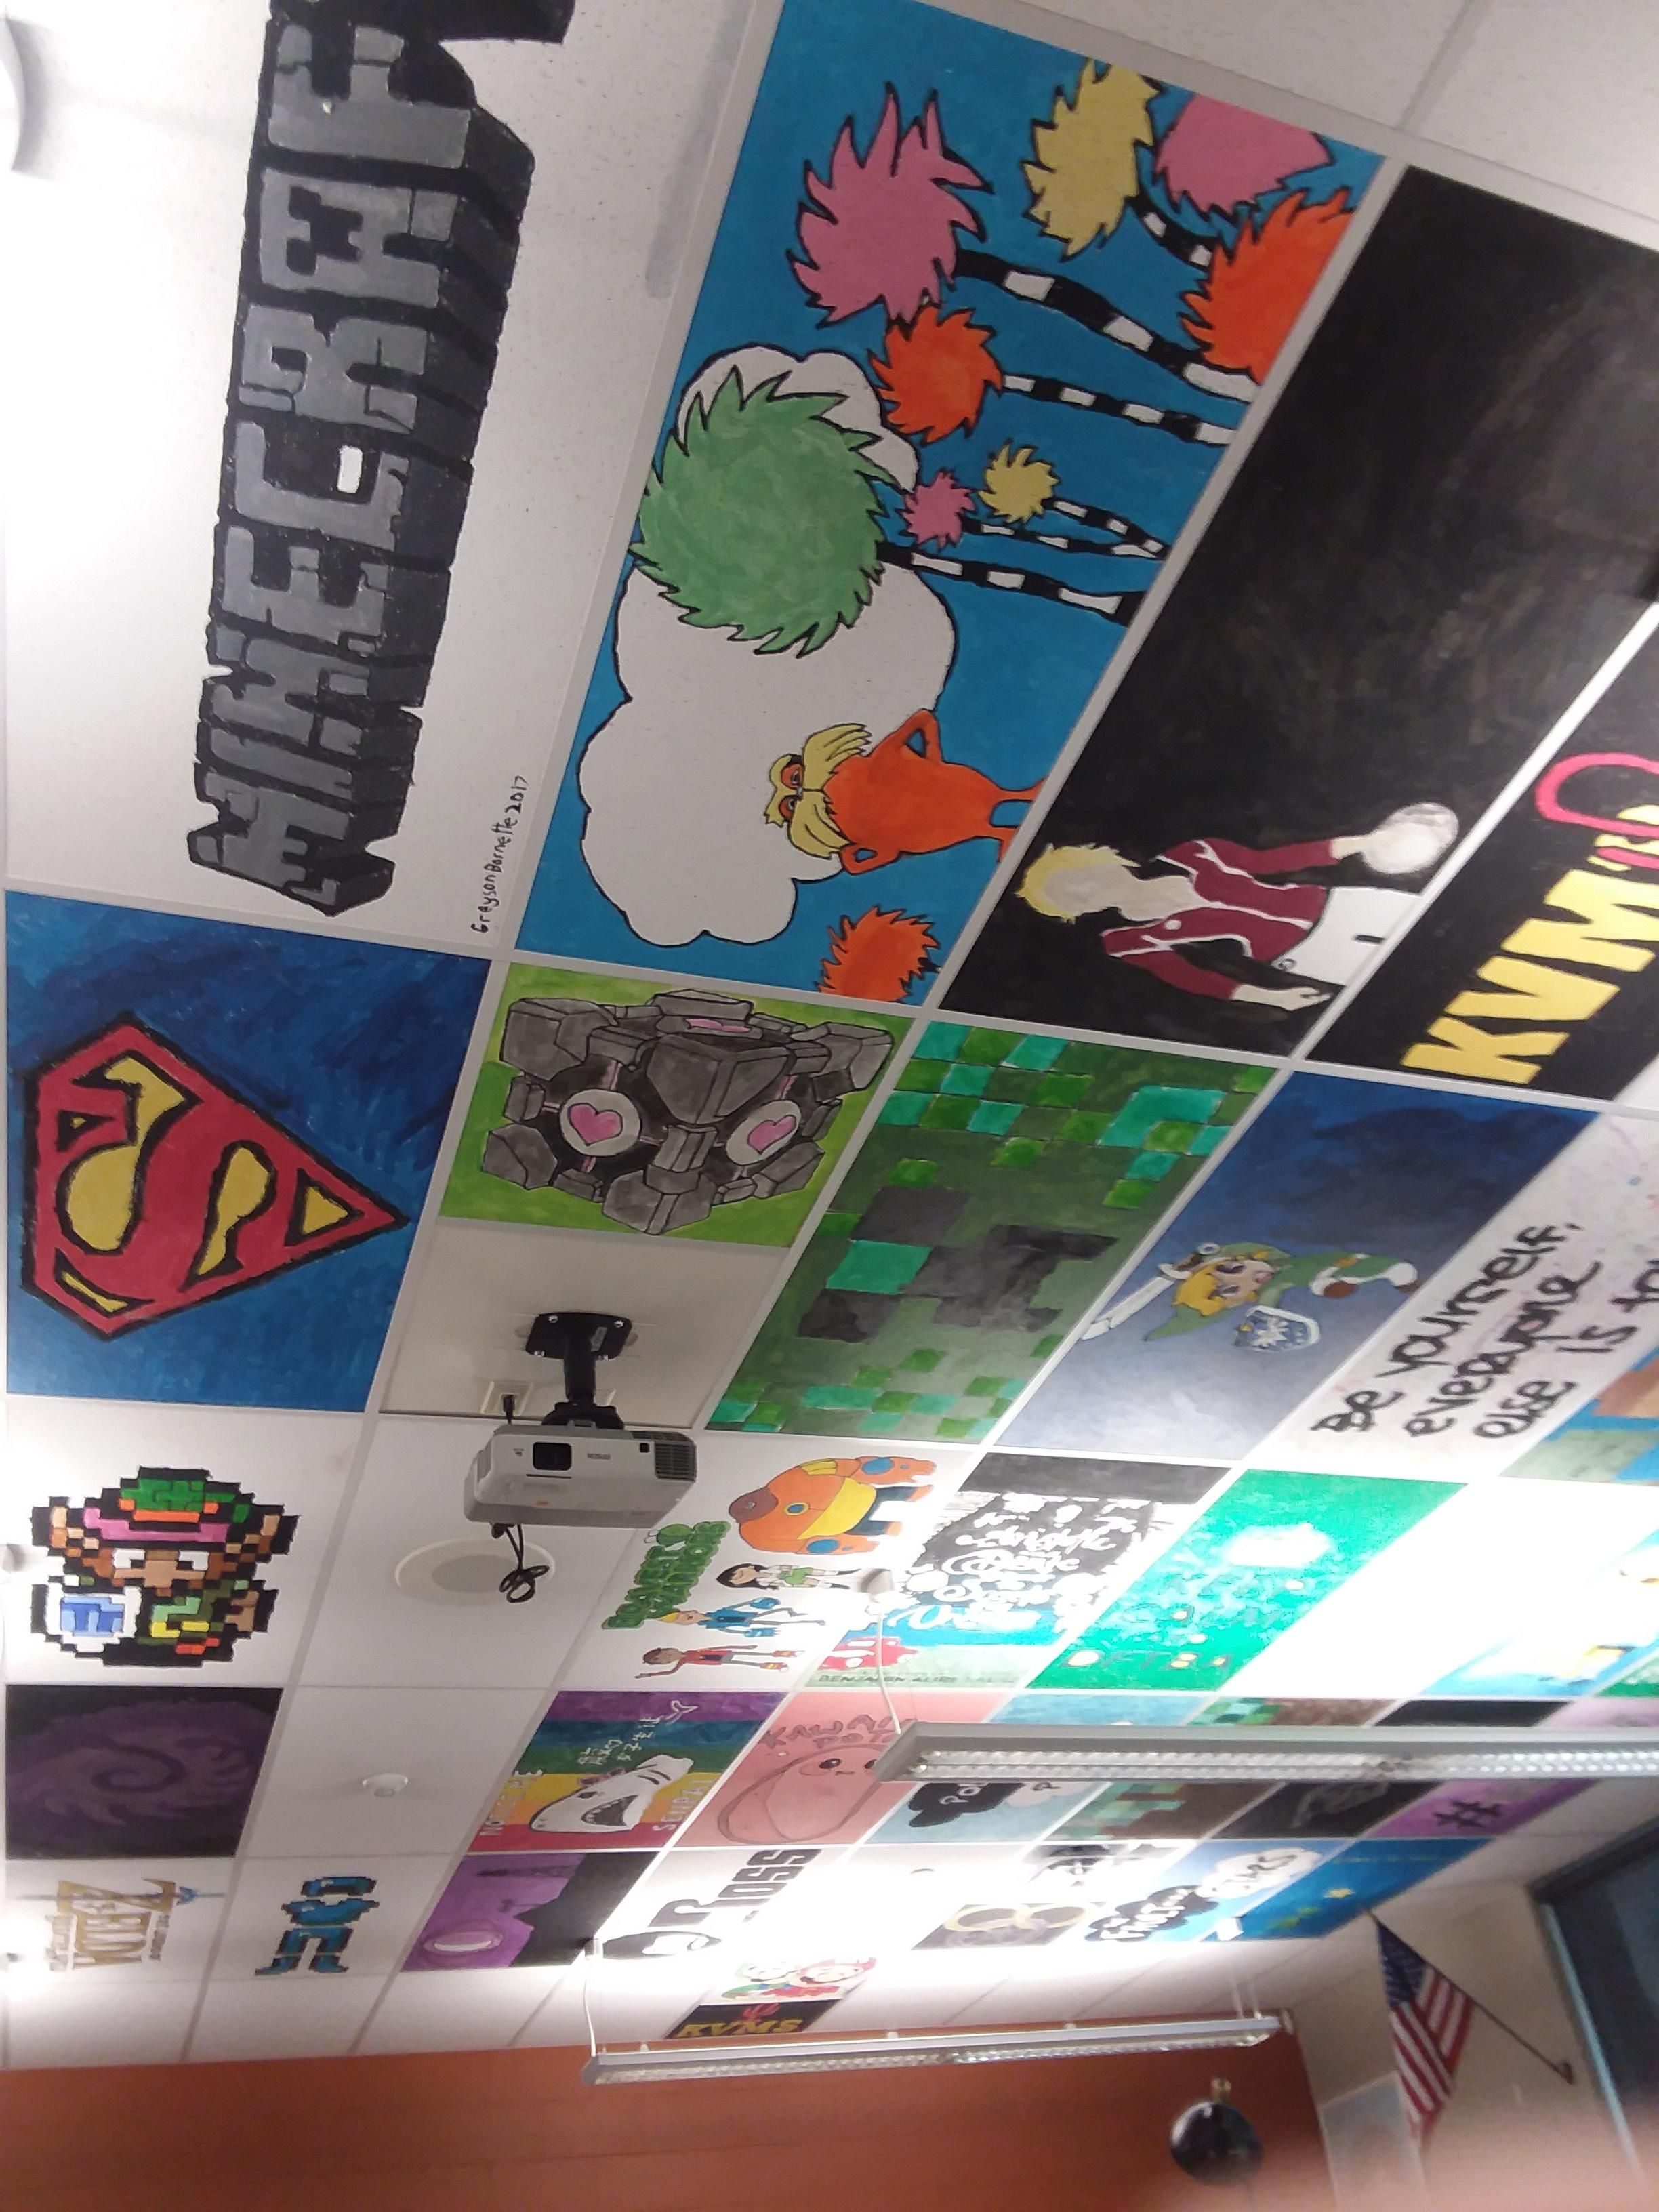 The Middle School I Go To Lets The 8th Graders Paint Ceiling Tiles For Their Favorite Teachees Https Ift Tt Ceiling Tiles Painted Painted Ceiling Ceiling Art